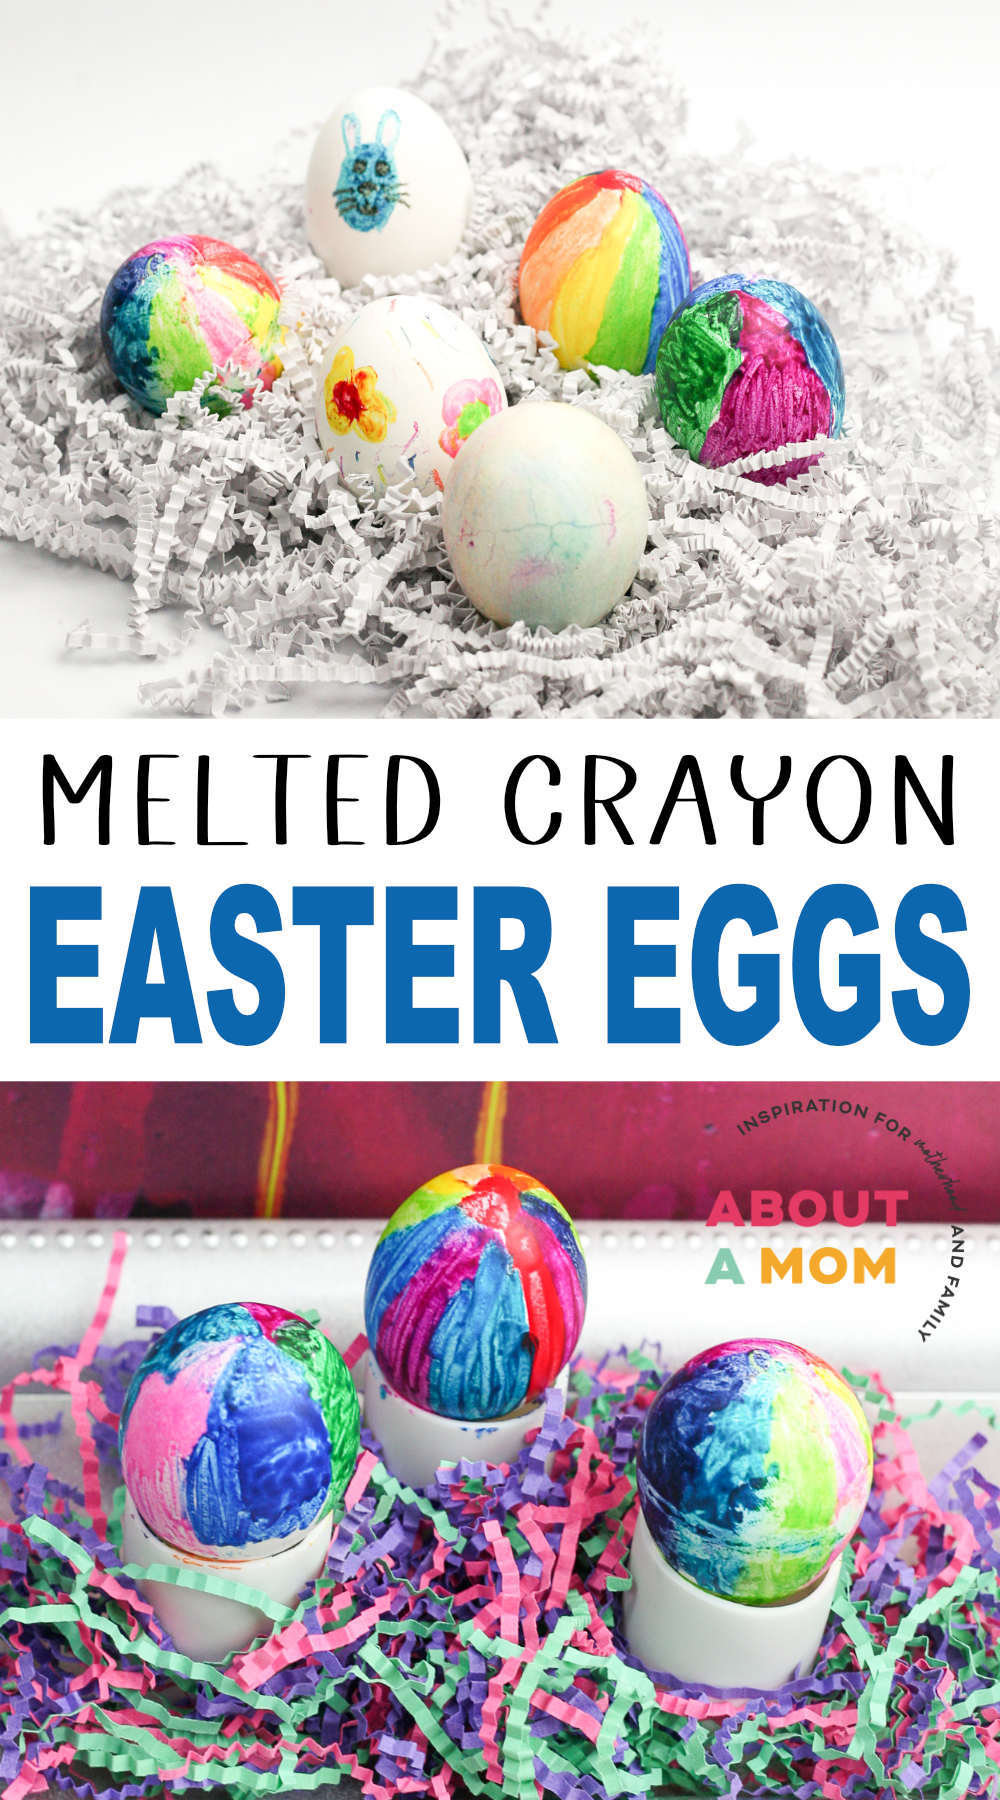 Looking for some Easter fun for kids? Try this melted crayon Easter eggs activity. It is a creative way to decorate eggs this Easter holiday. They are mess free and you won't have to use any smelly vinegar!